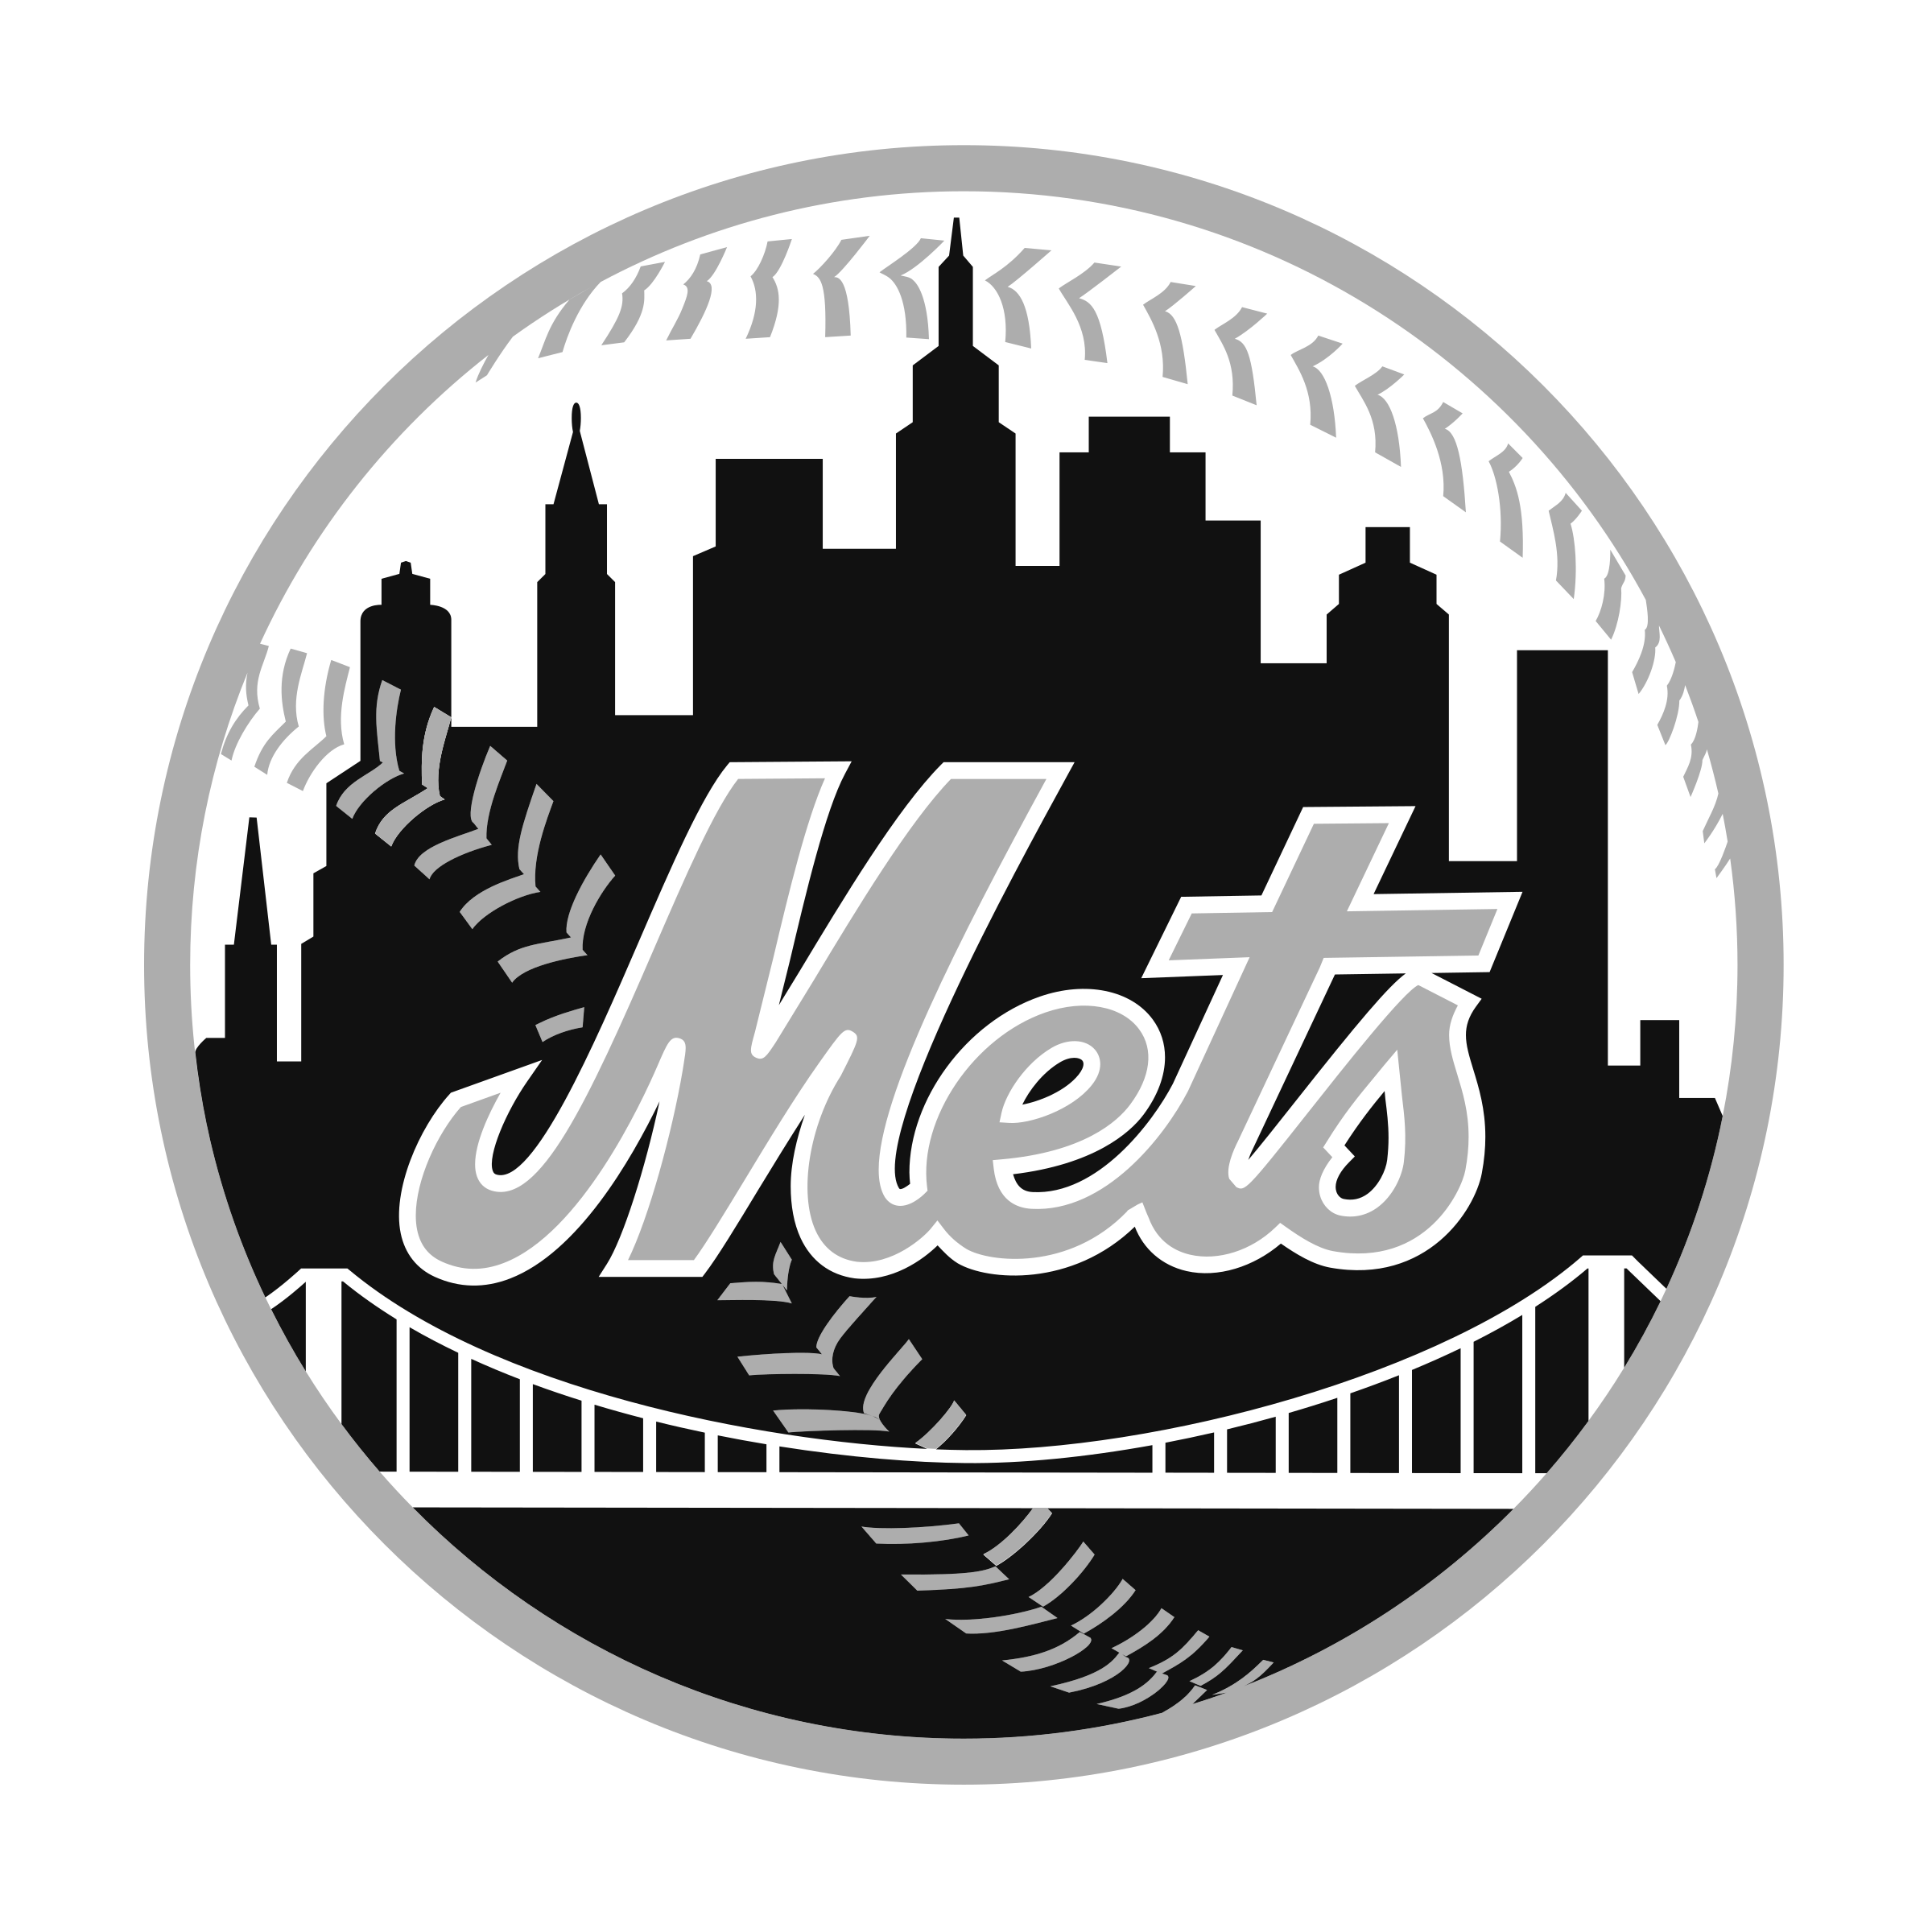 Mets baseball clipart clip freeuse library New York Mets Logo PNG Transparent & SVG Vector - Freebie Supply clip freeuse library